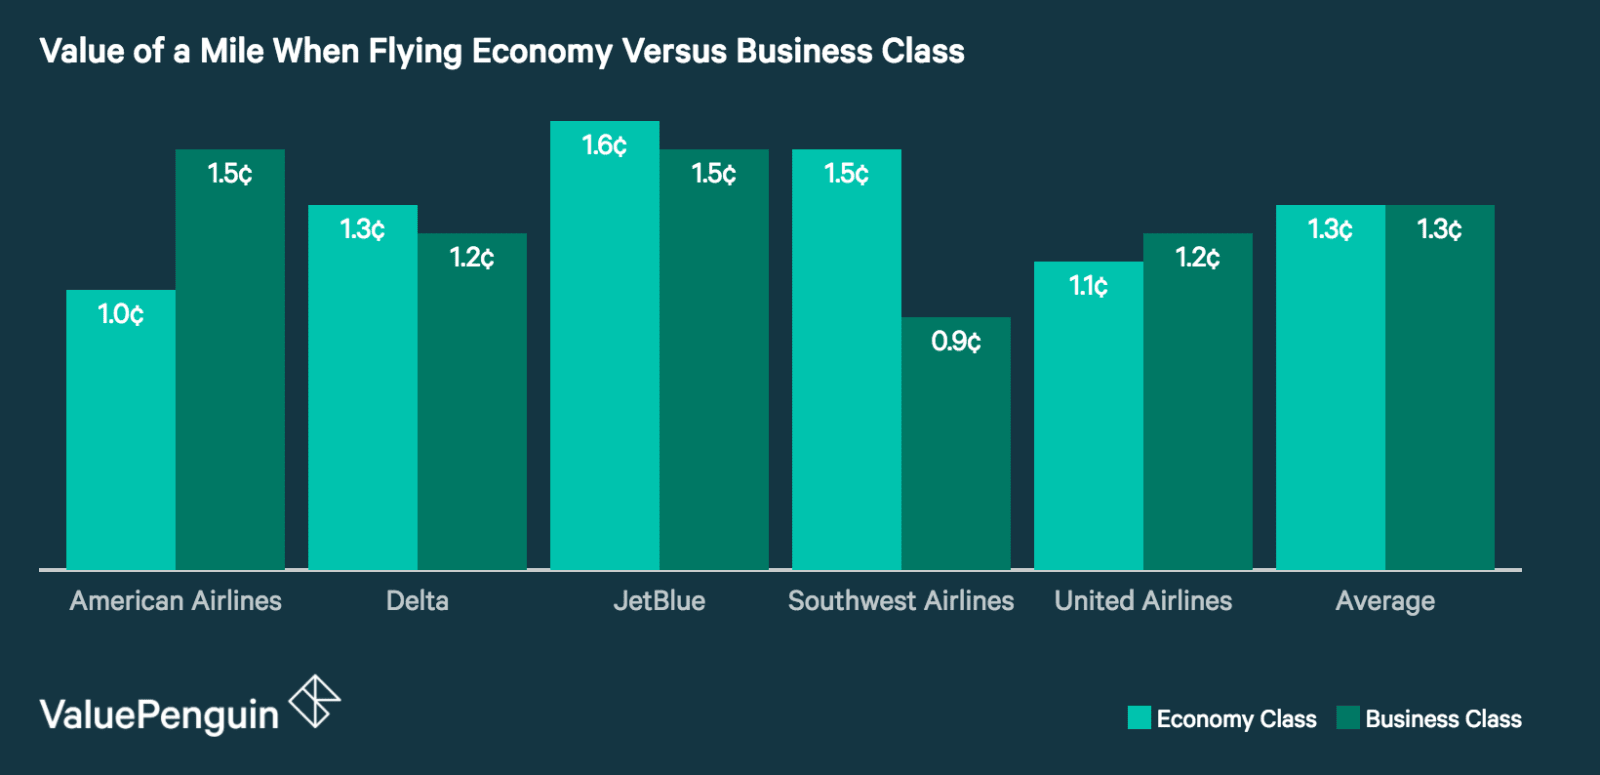 Flying Economy Versus Business - Value of a Mile